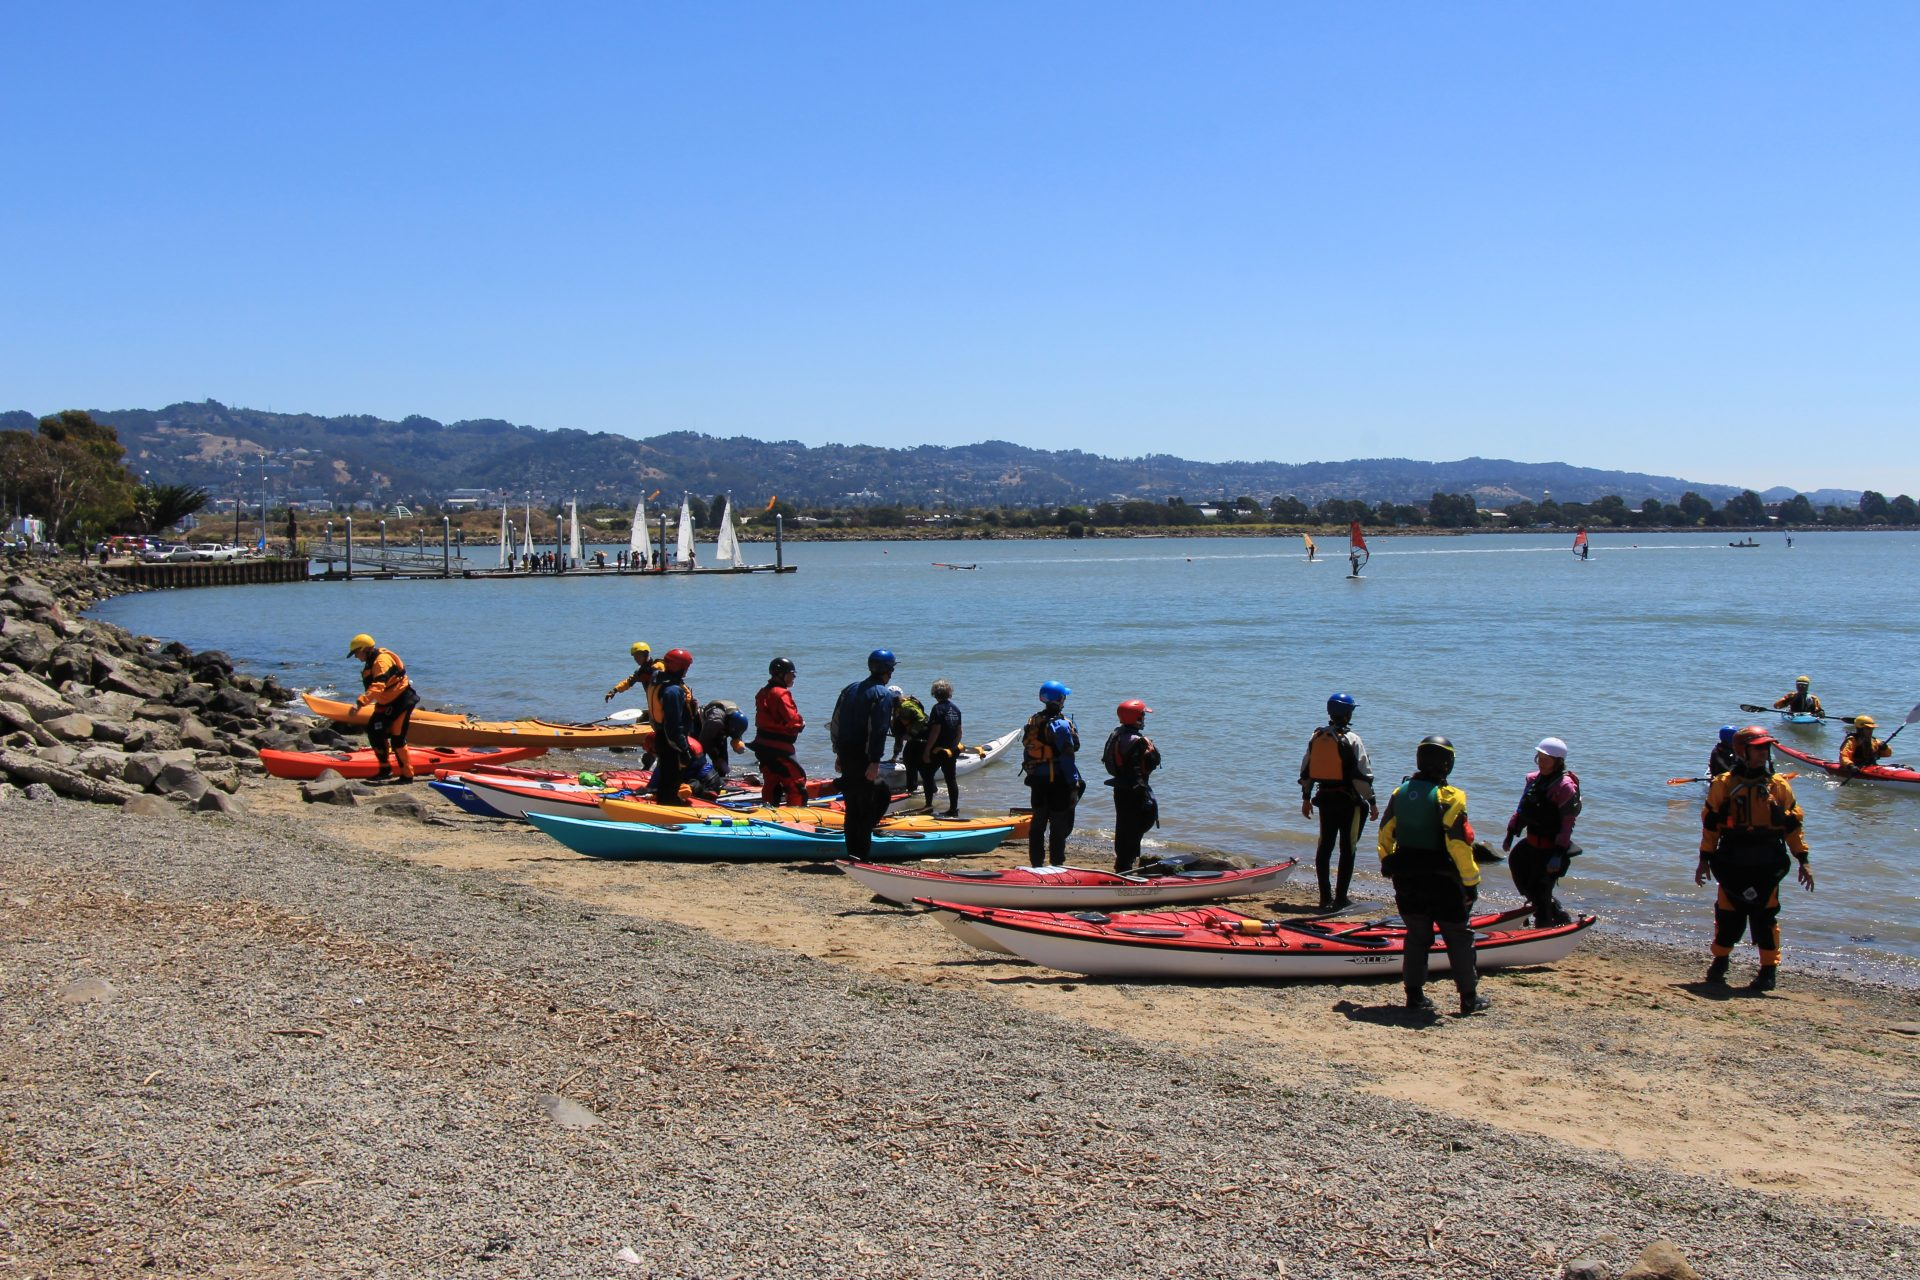 Large group of kayakers milling around boats on sandy beach, with sailboats in distance